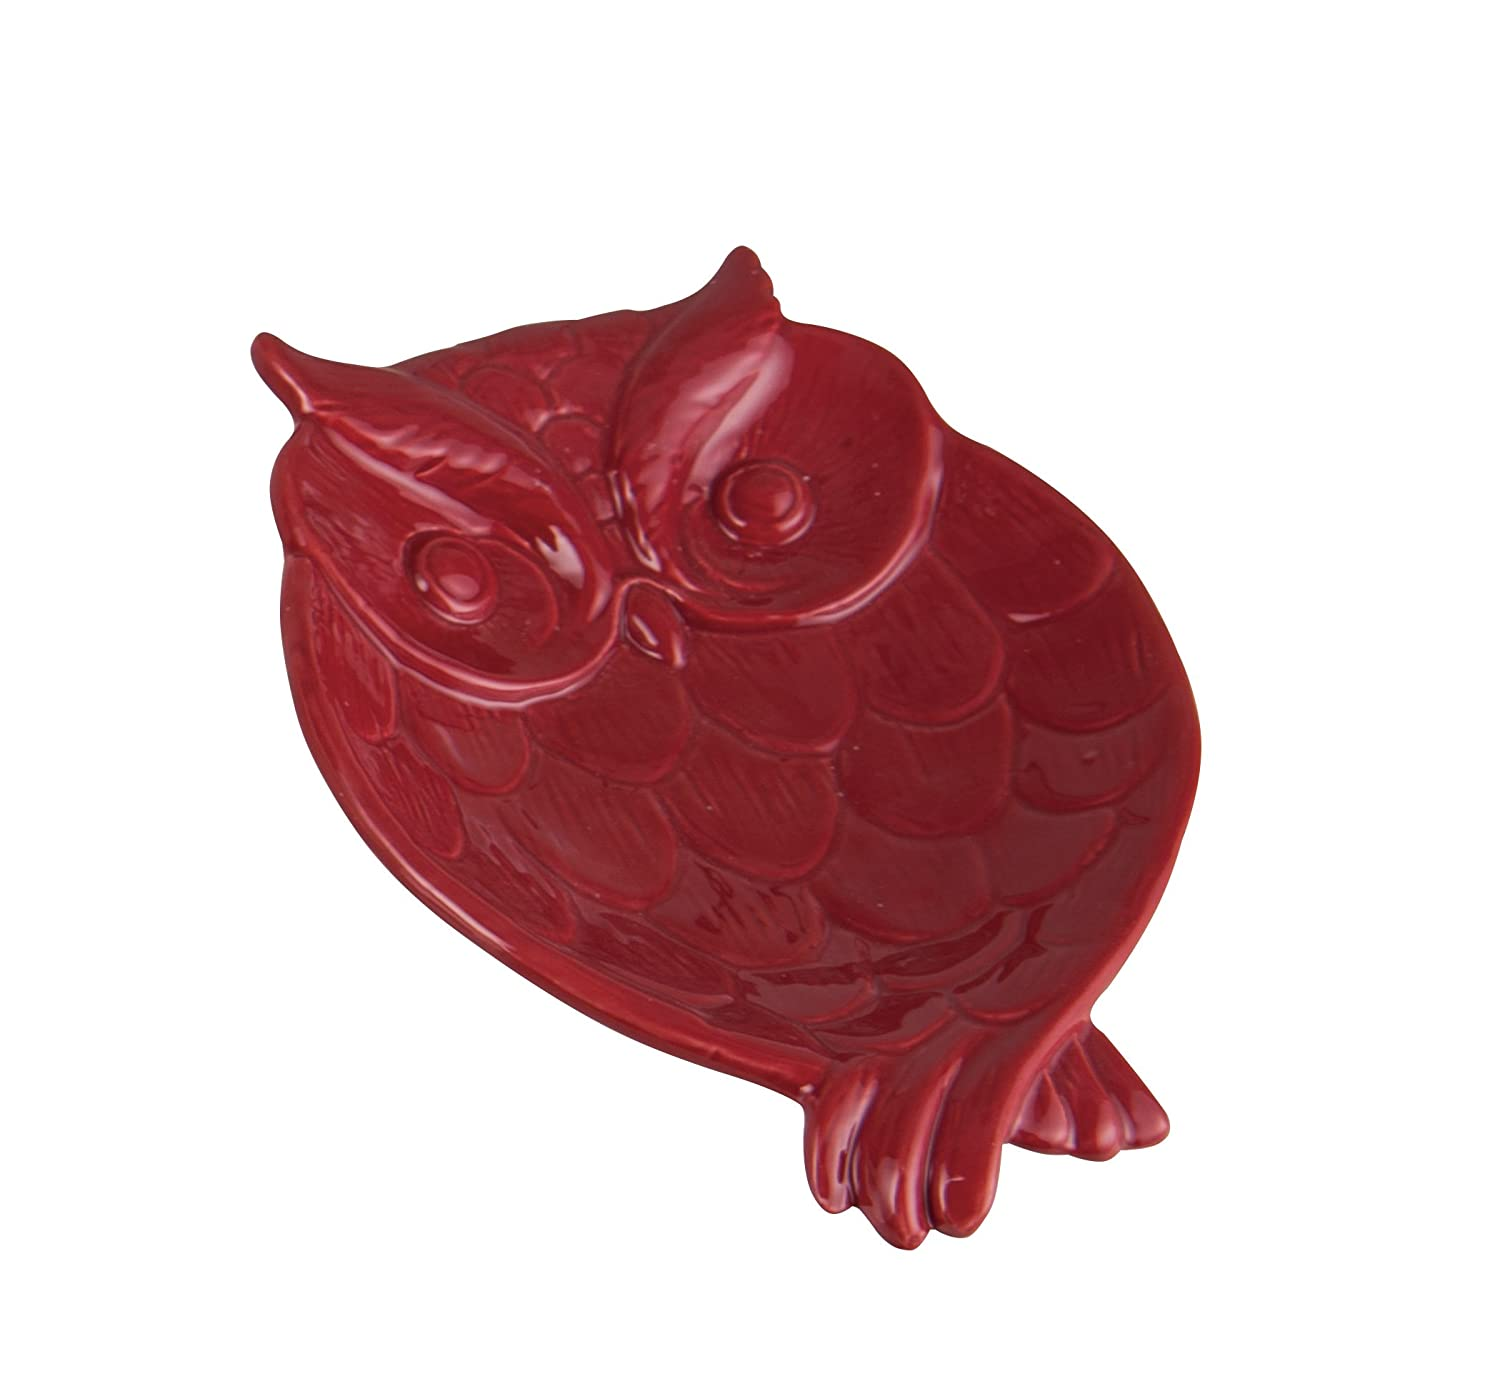 Crimson Red Embossed Barn Owl Shaped 7 x 5 Dolomite Ceramic Serving Snack Plate Transpac Imports